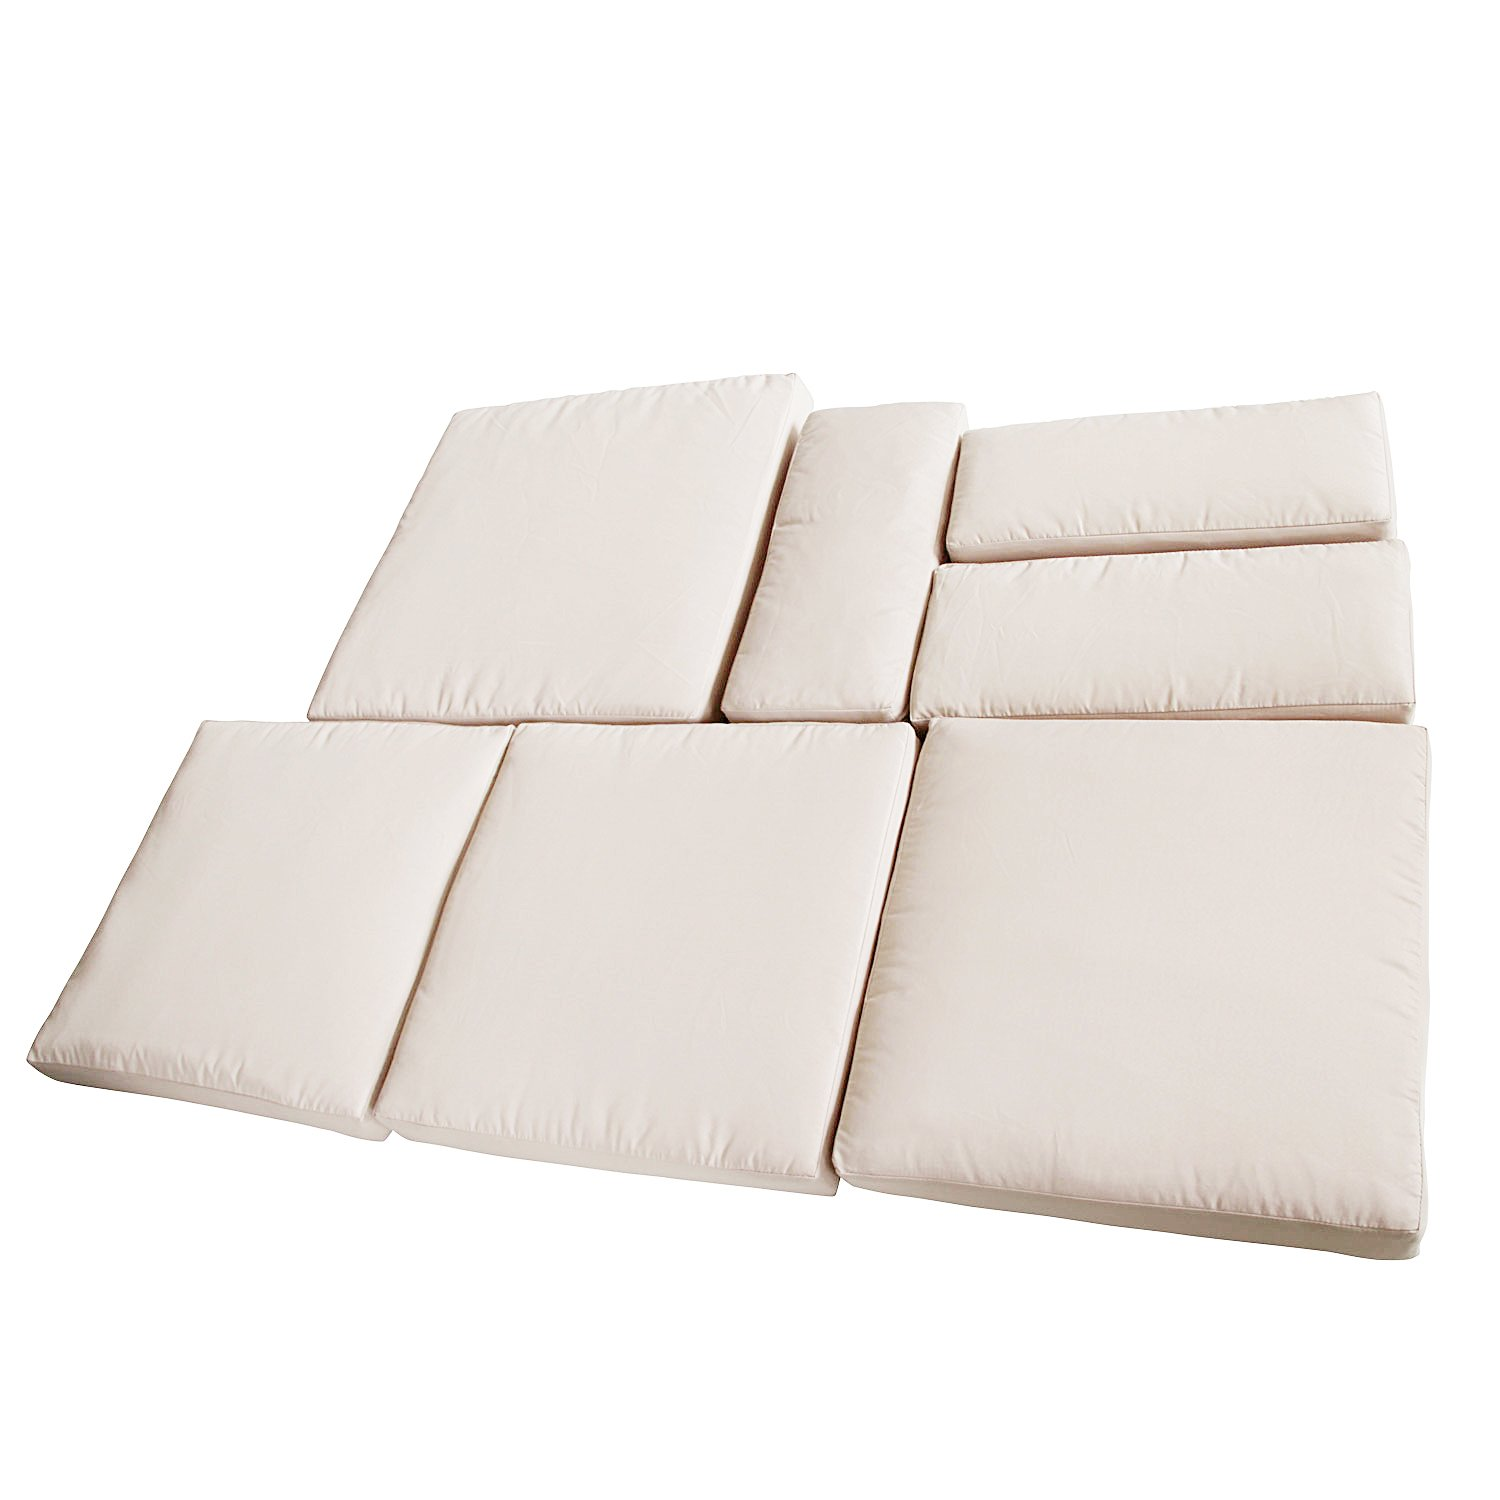 patio furniture cushion covers. Outsunny Rattan Garden Wicker Patio Furniture Cushion Cover Sofa Replacement: Amazon.co.uk: \u0026 Outdoors Covers T